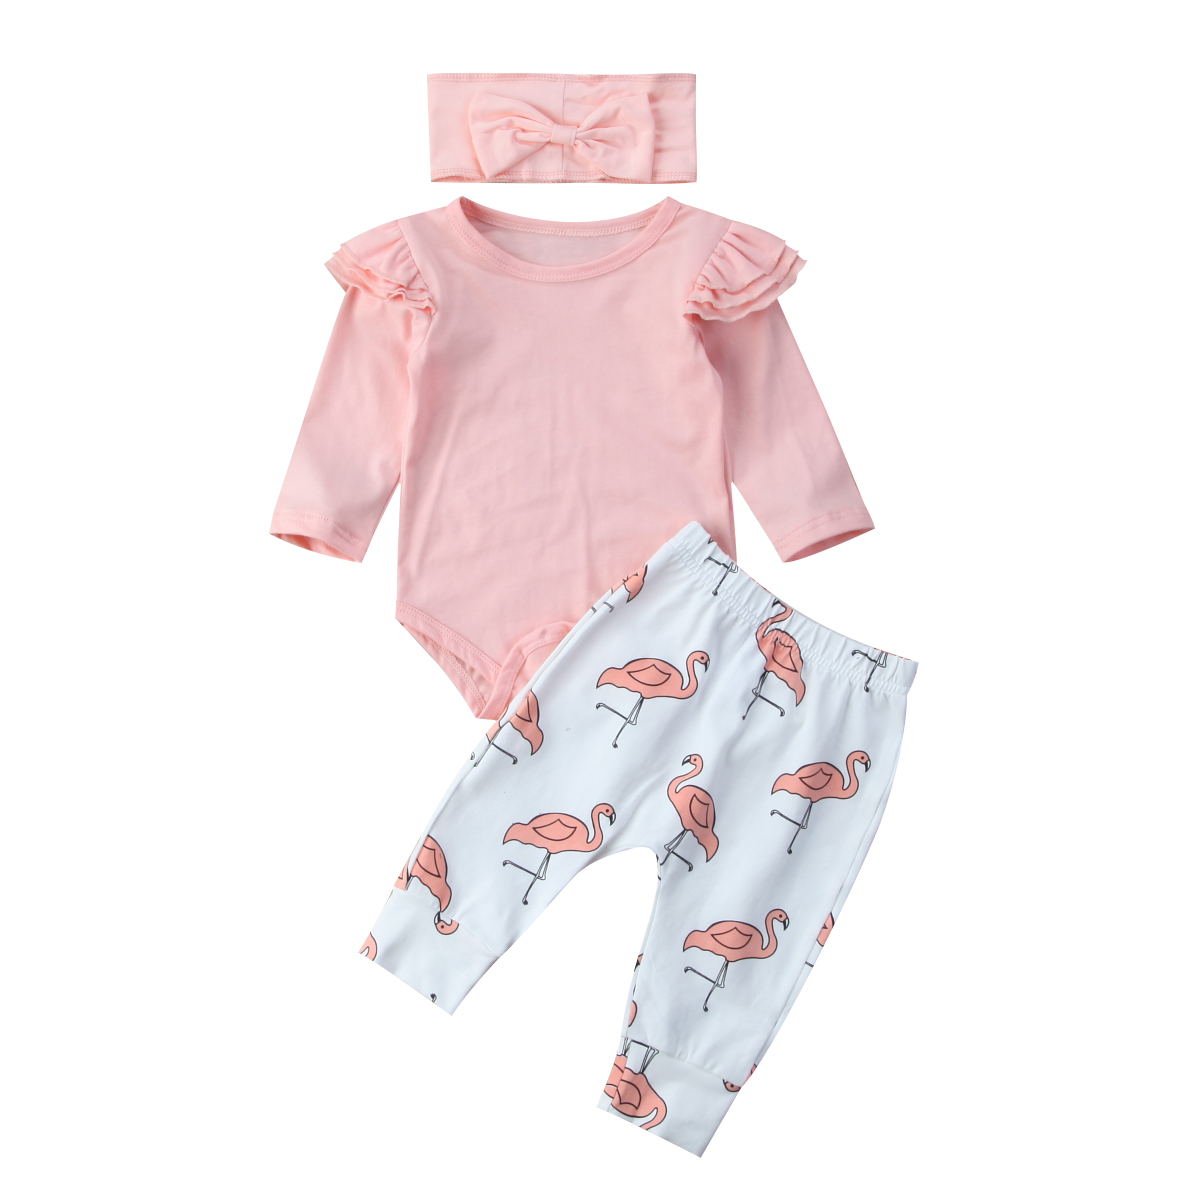 Emmababy Infant Baby Boys Romper Flying Sleeve Tops 3PCS